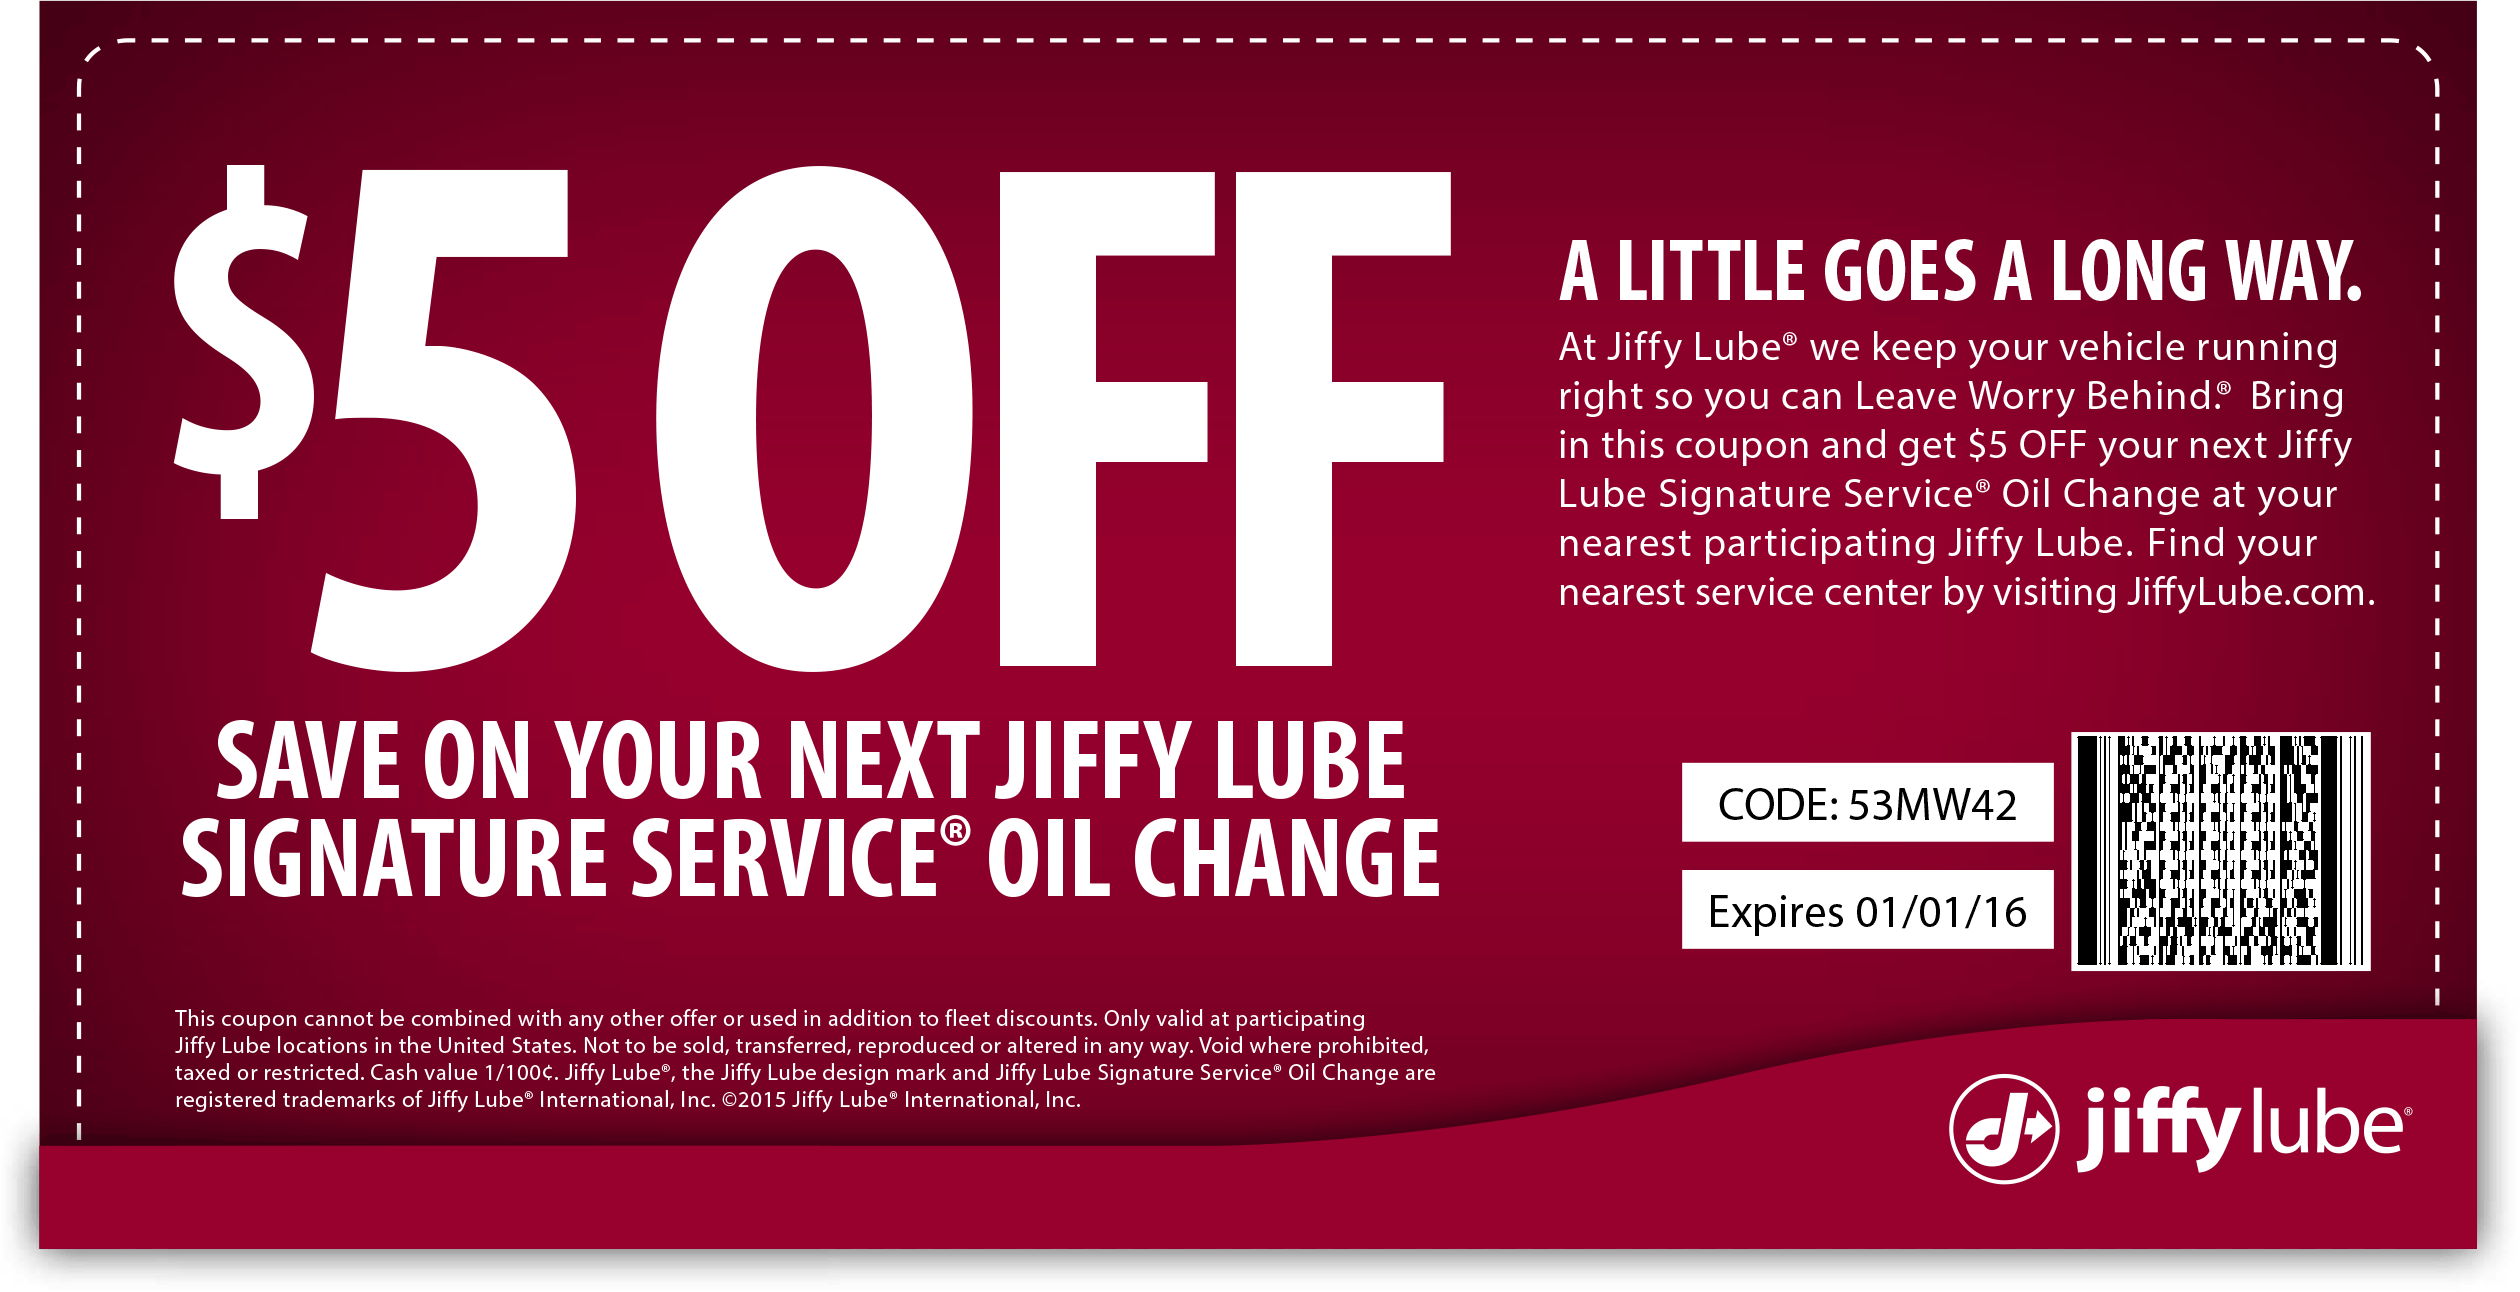 Jiffy Lube Coupon February 2017 $5 off an oil change at Jiffy Lube